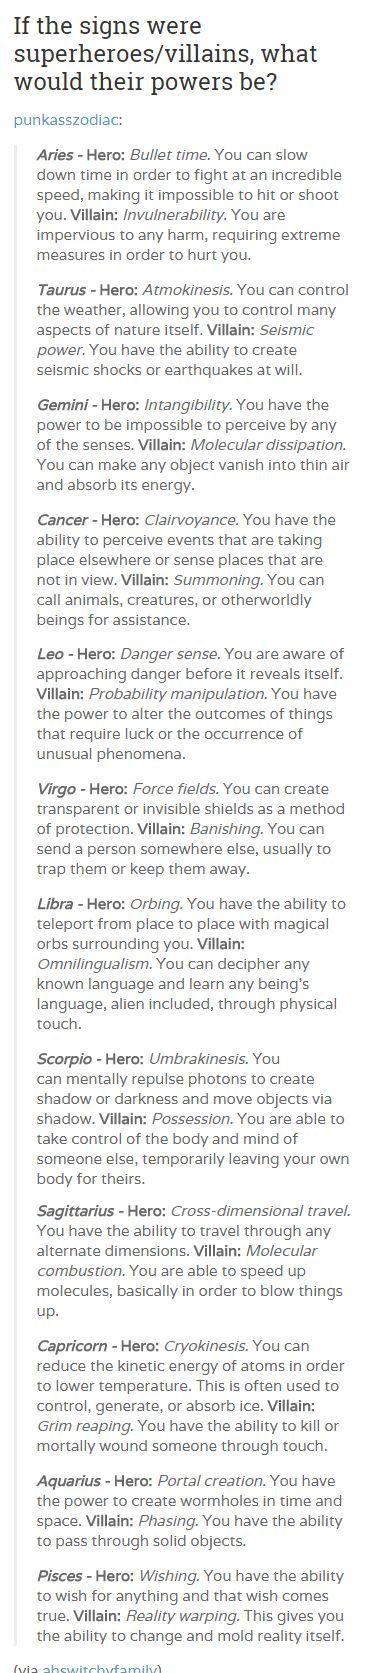 your zodiac sign as|| As a Sagittarius I am happy to be a villain and blow things up.: